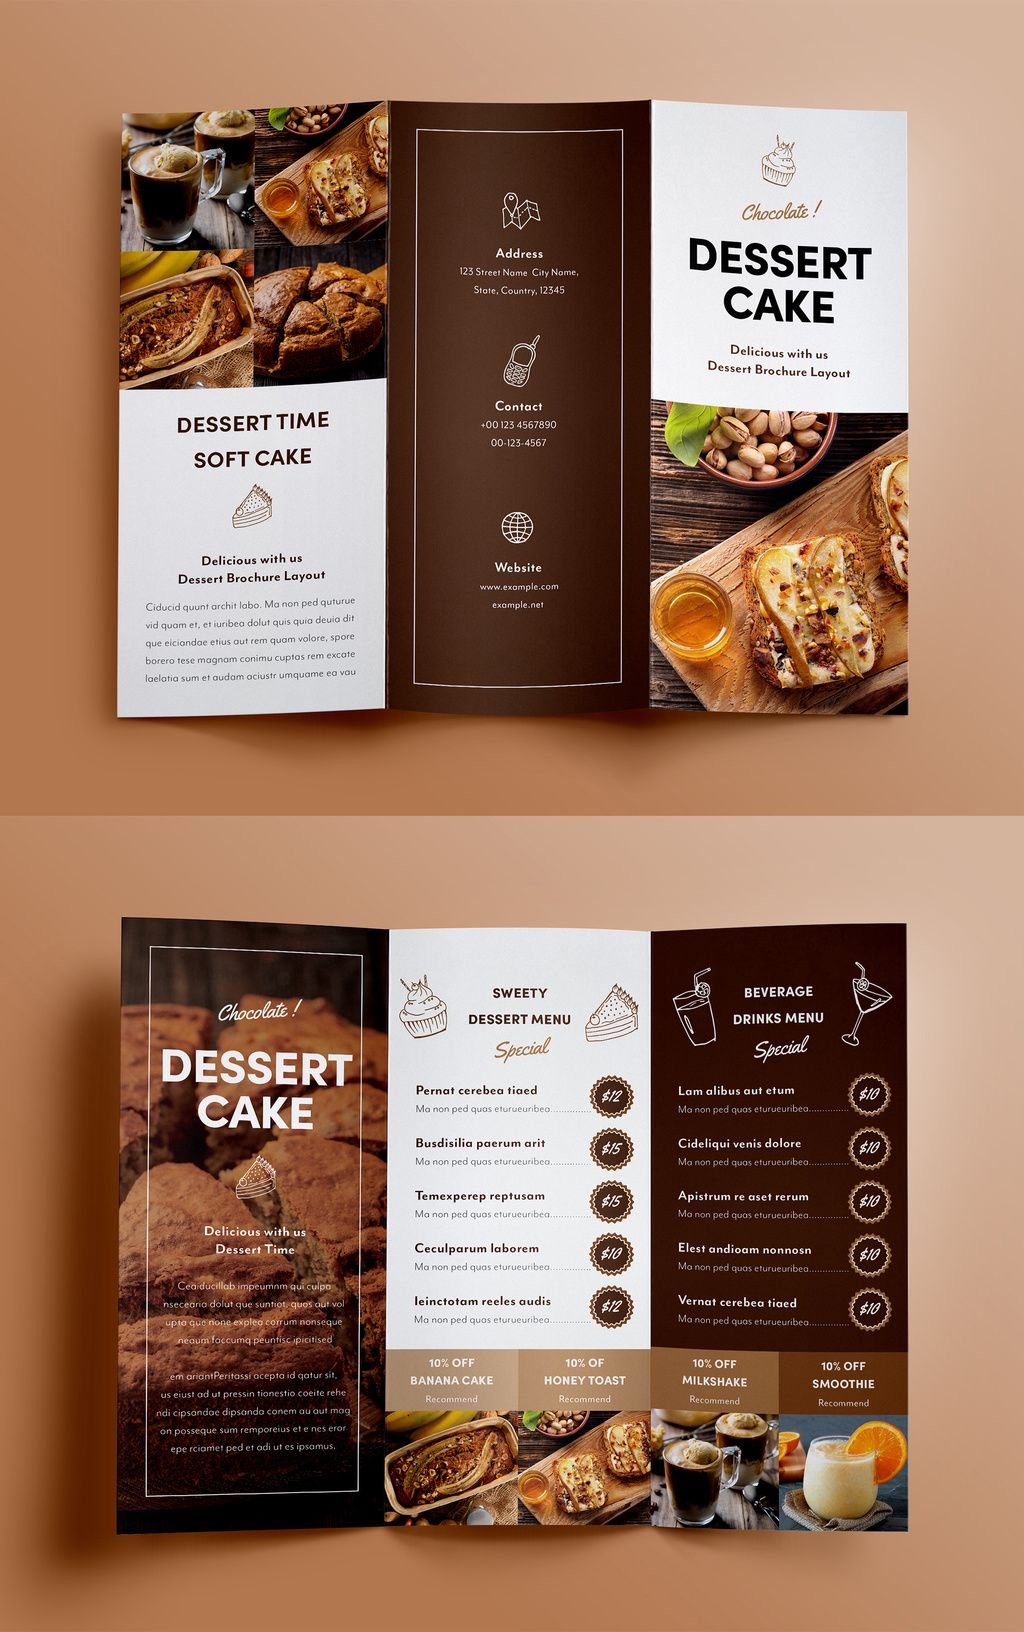 Dessert Menu Trifold Brochure Layout. Buy this stock